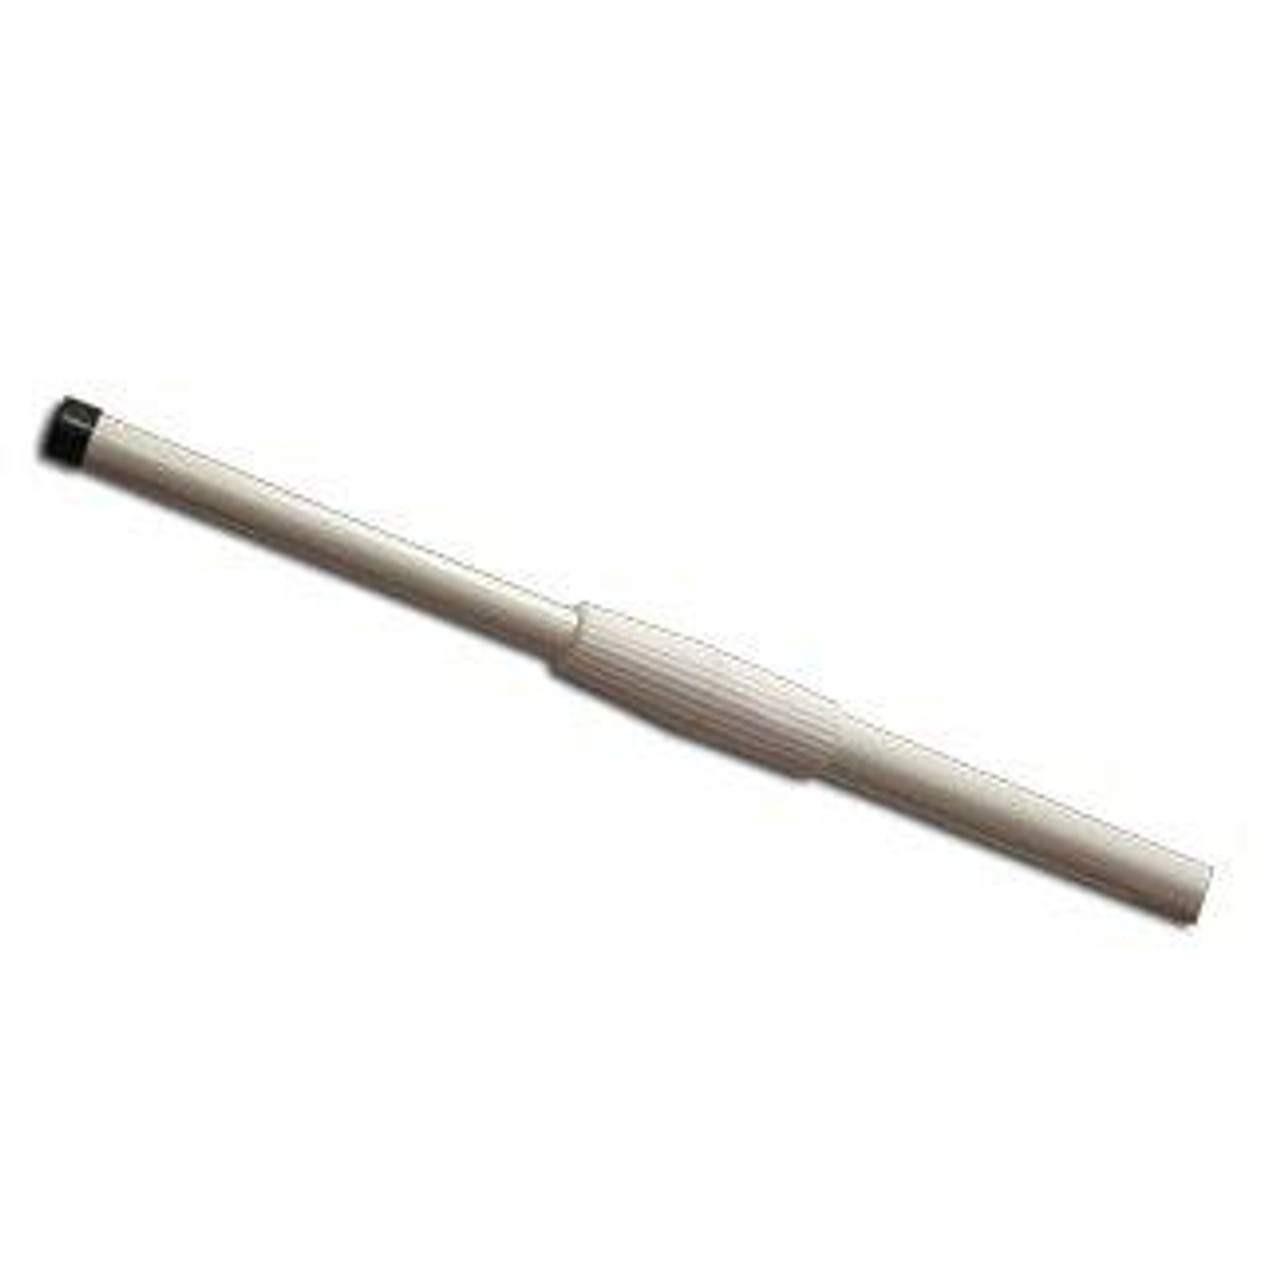 The telescoping fiberglass flagpole, fully contracted, complete with top cap and adjustable telescoping grip.